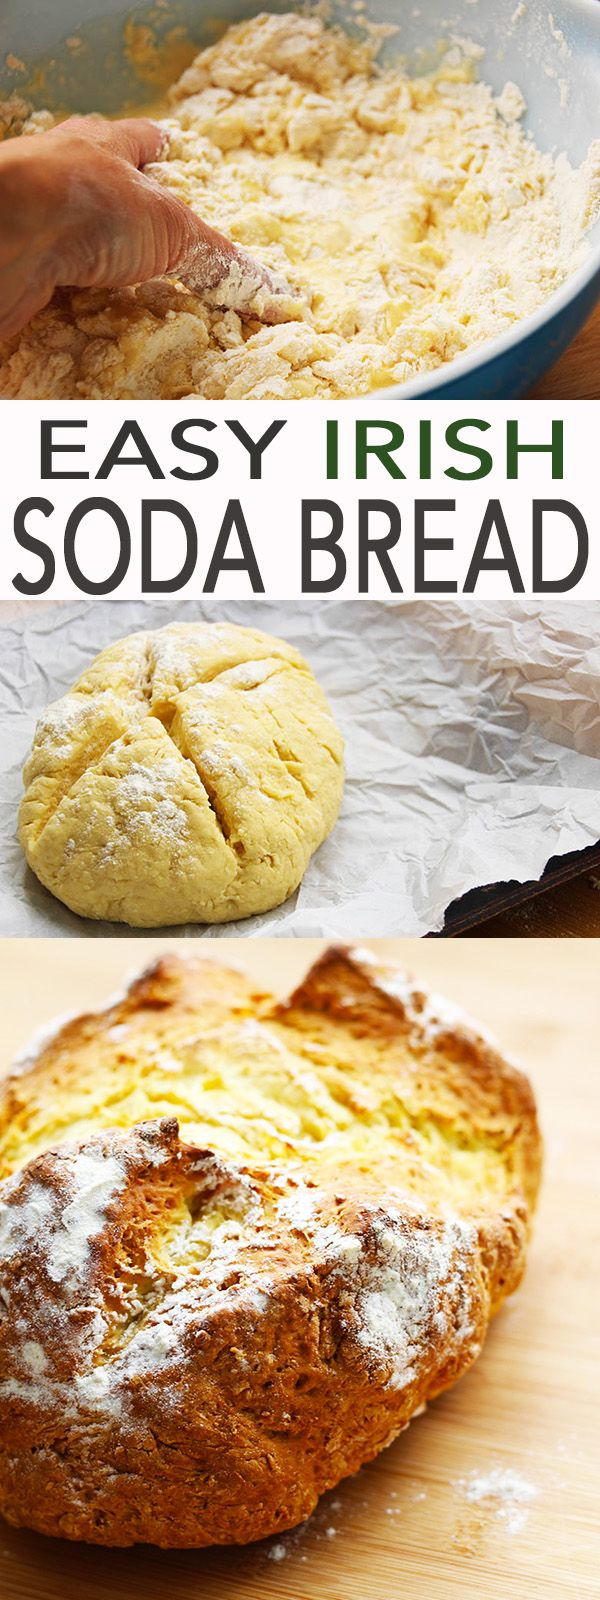 A recipe for a simple and traditional real Irish Soda Bread. This easy recipe is especially great for beginner cooks or anyone who wants an easy and simple homemade bread.  It's quick to make too.